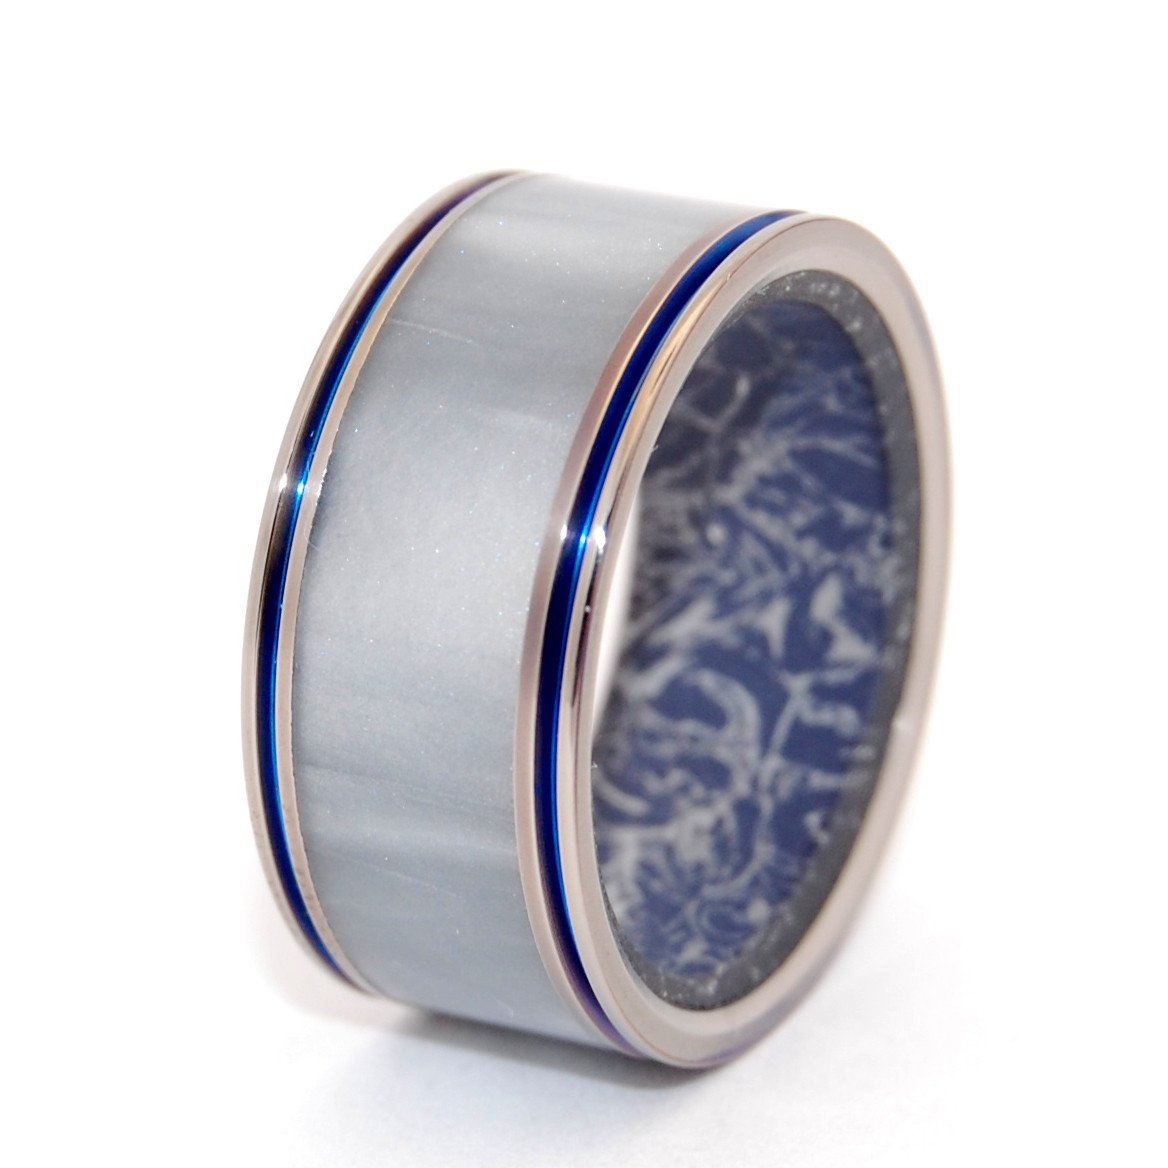 Marbled Opalescent + Mokume Gane [Blue/Silver] With Blue Pinstripes